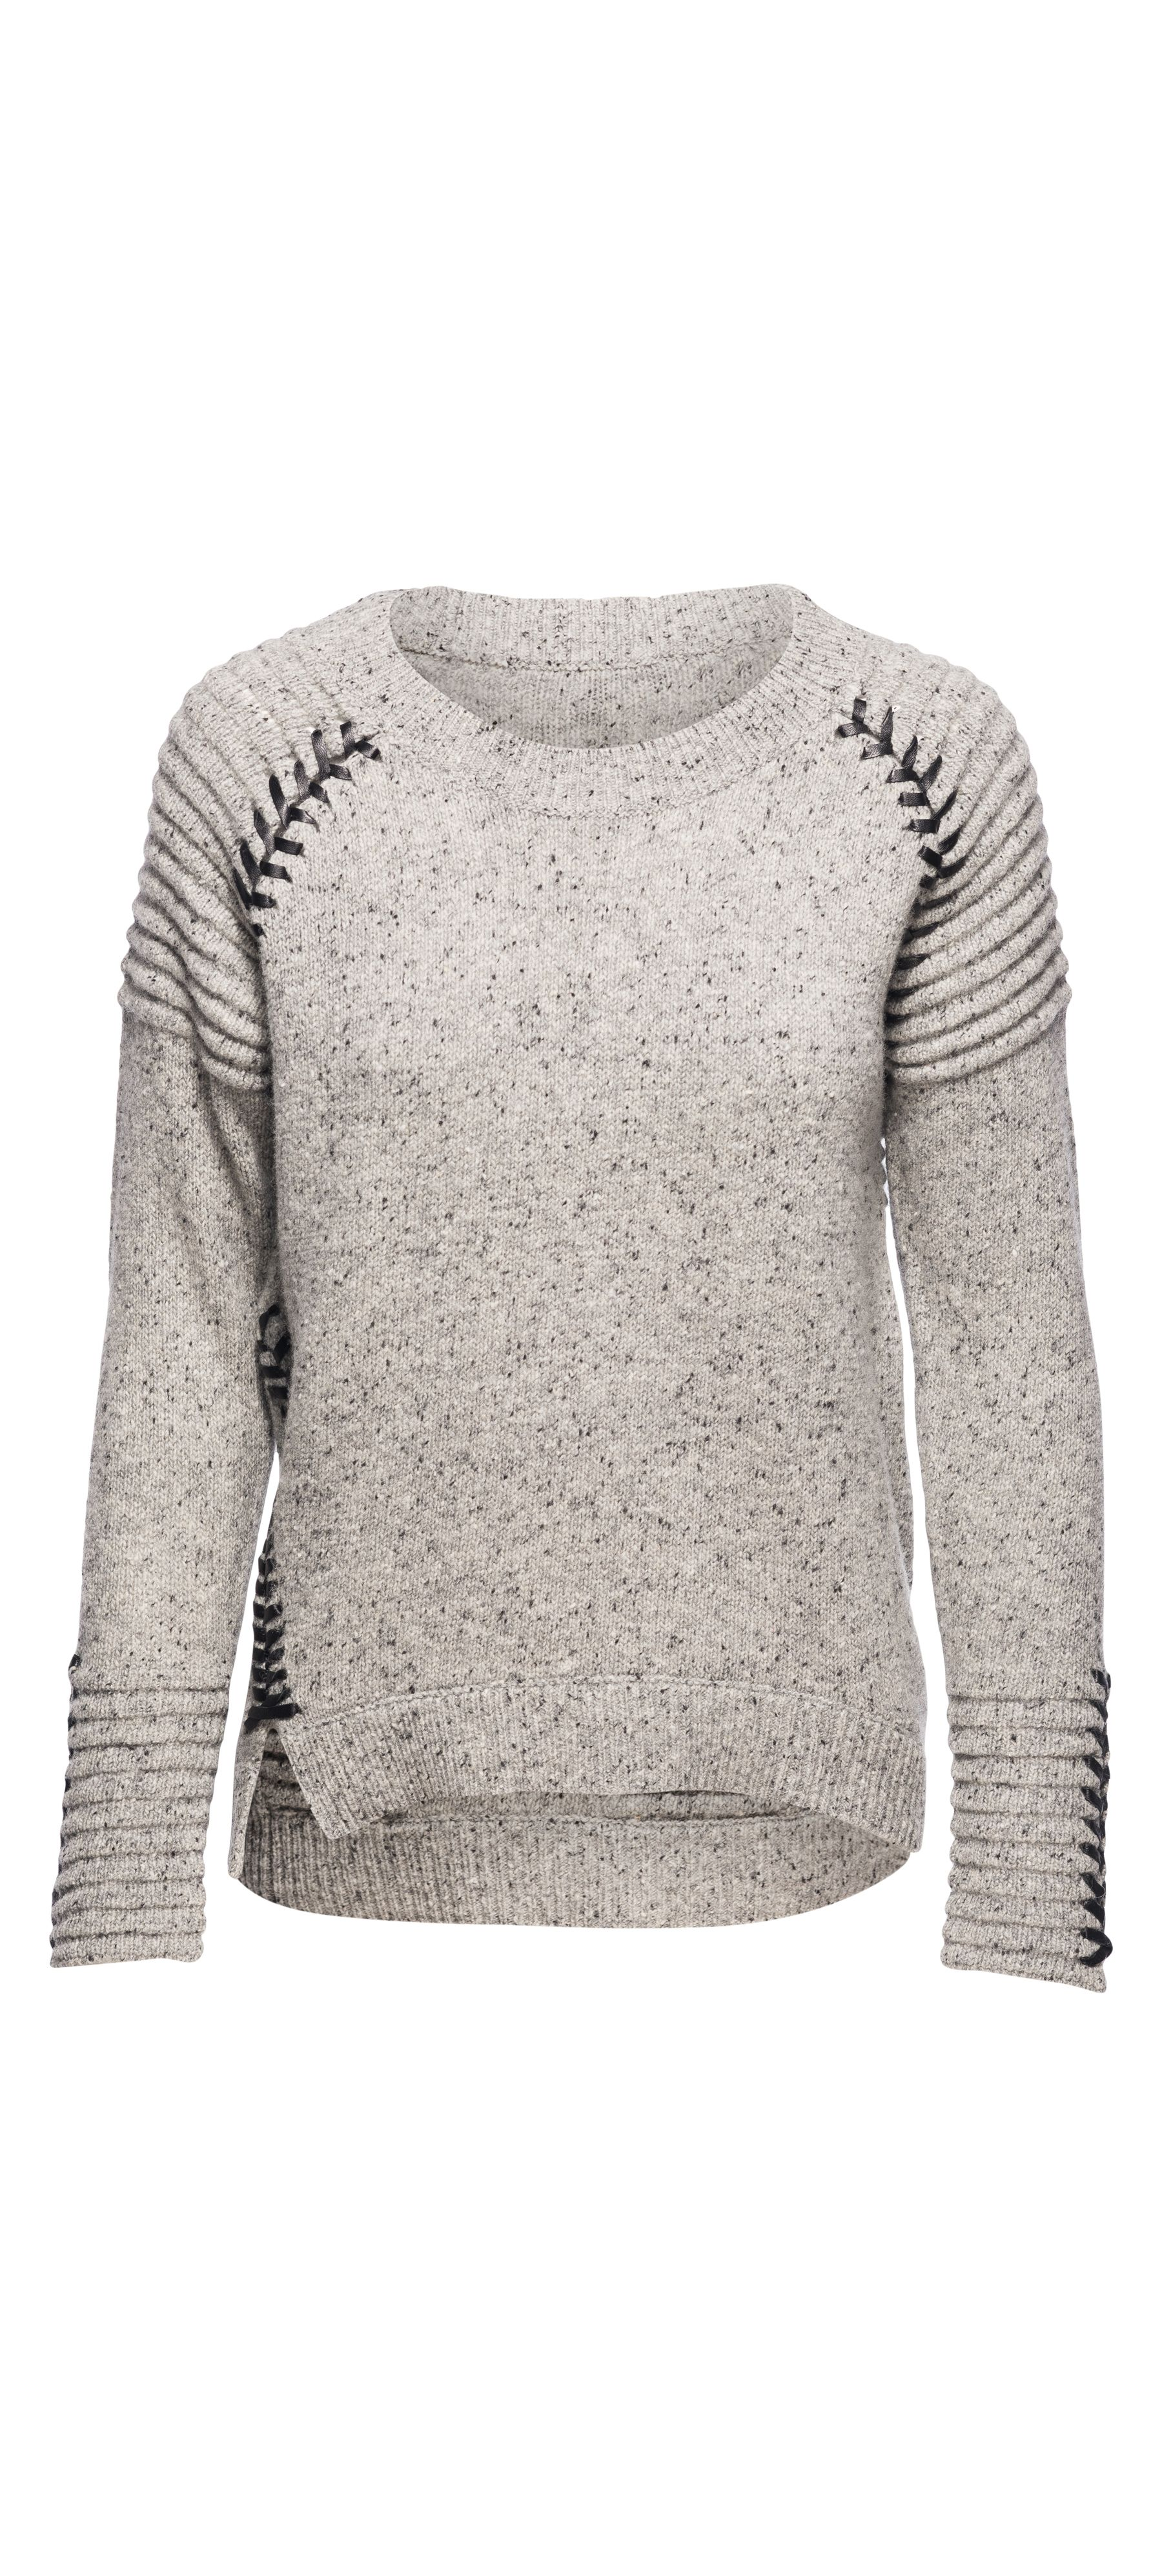 Generation Love Eleanor Whip Stitch in Grey / Manage Products / Catalog…